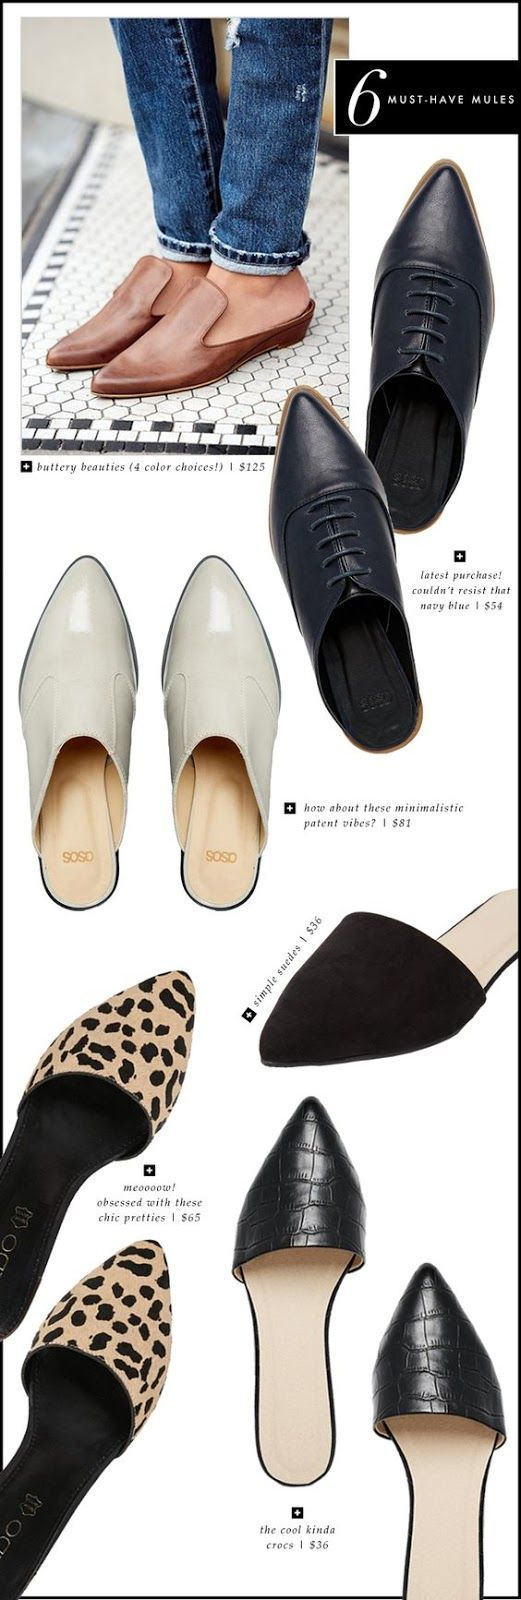 6 Must-have Mule Flats for 2017 - PIN Blogger